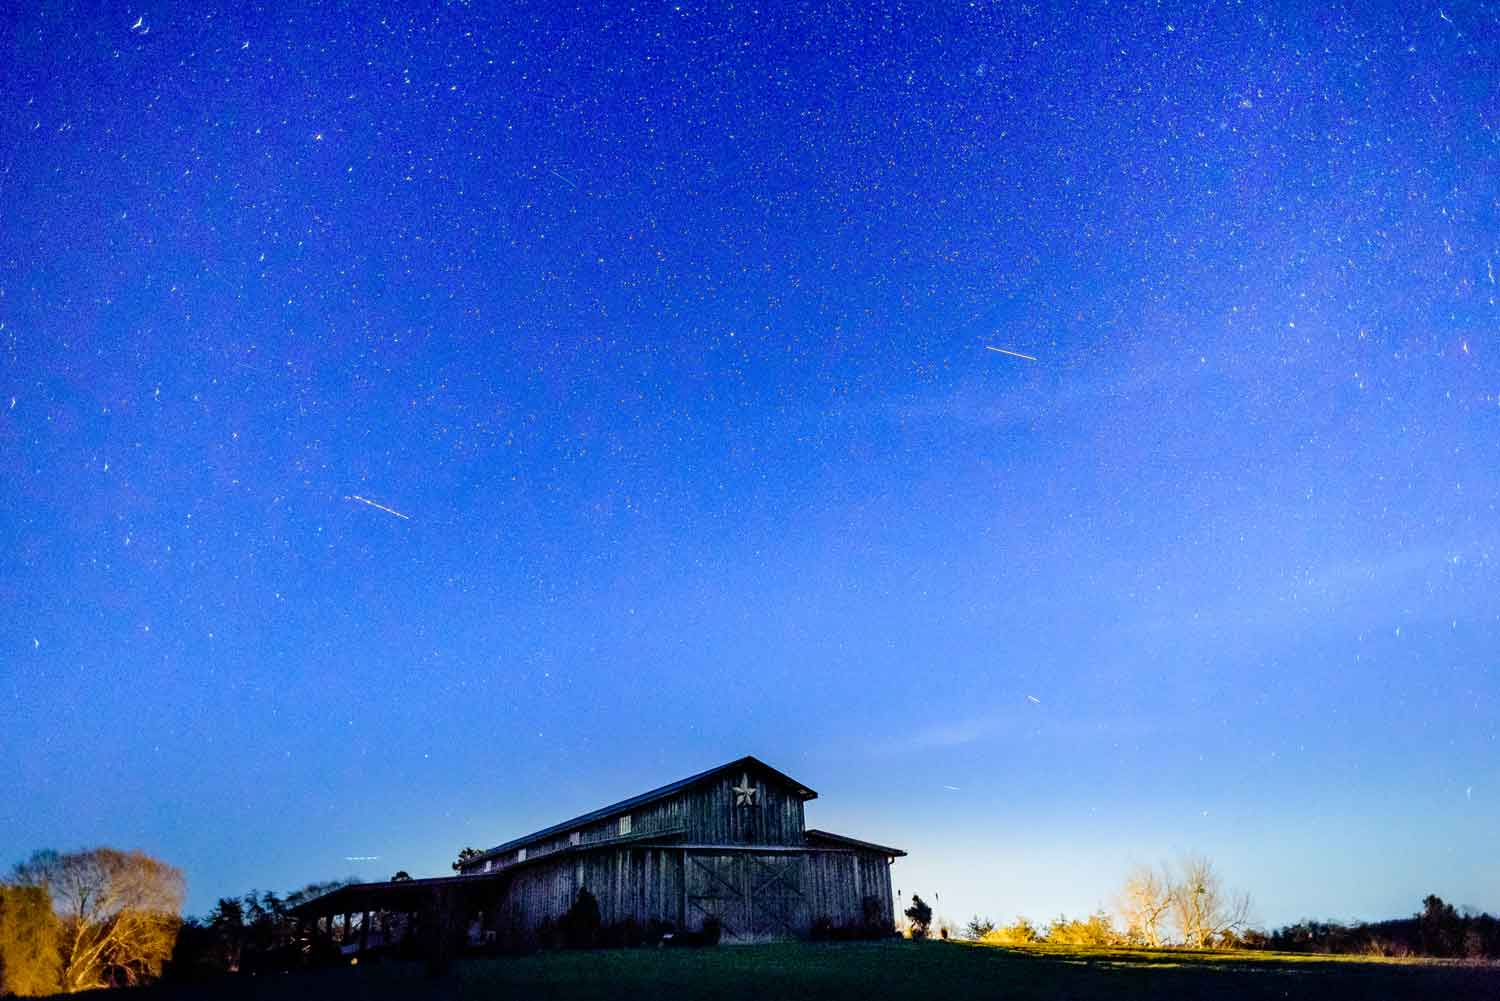 The barn at Drewia Hill at night under starry sky.